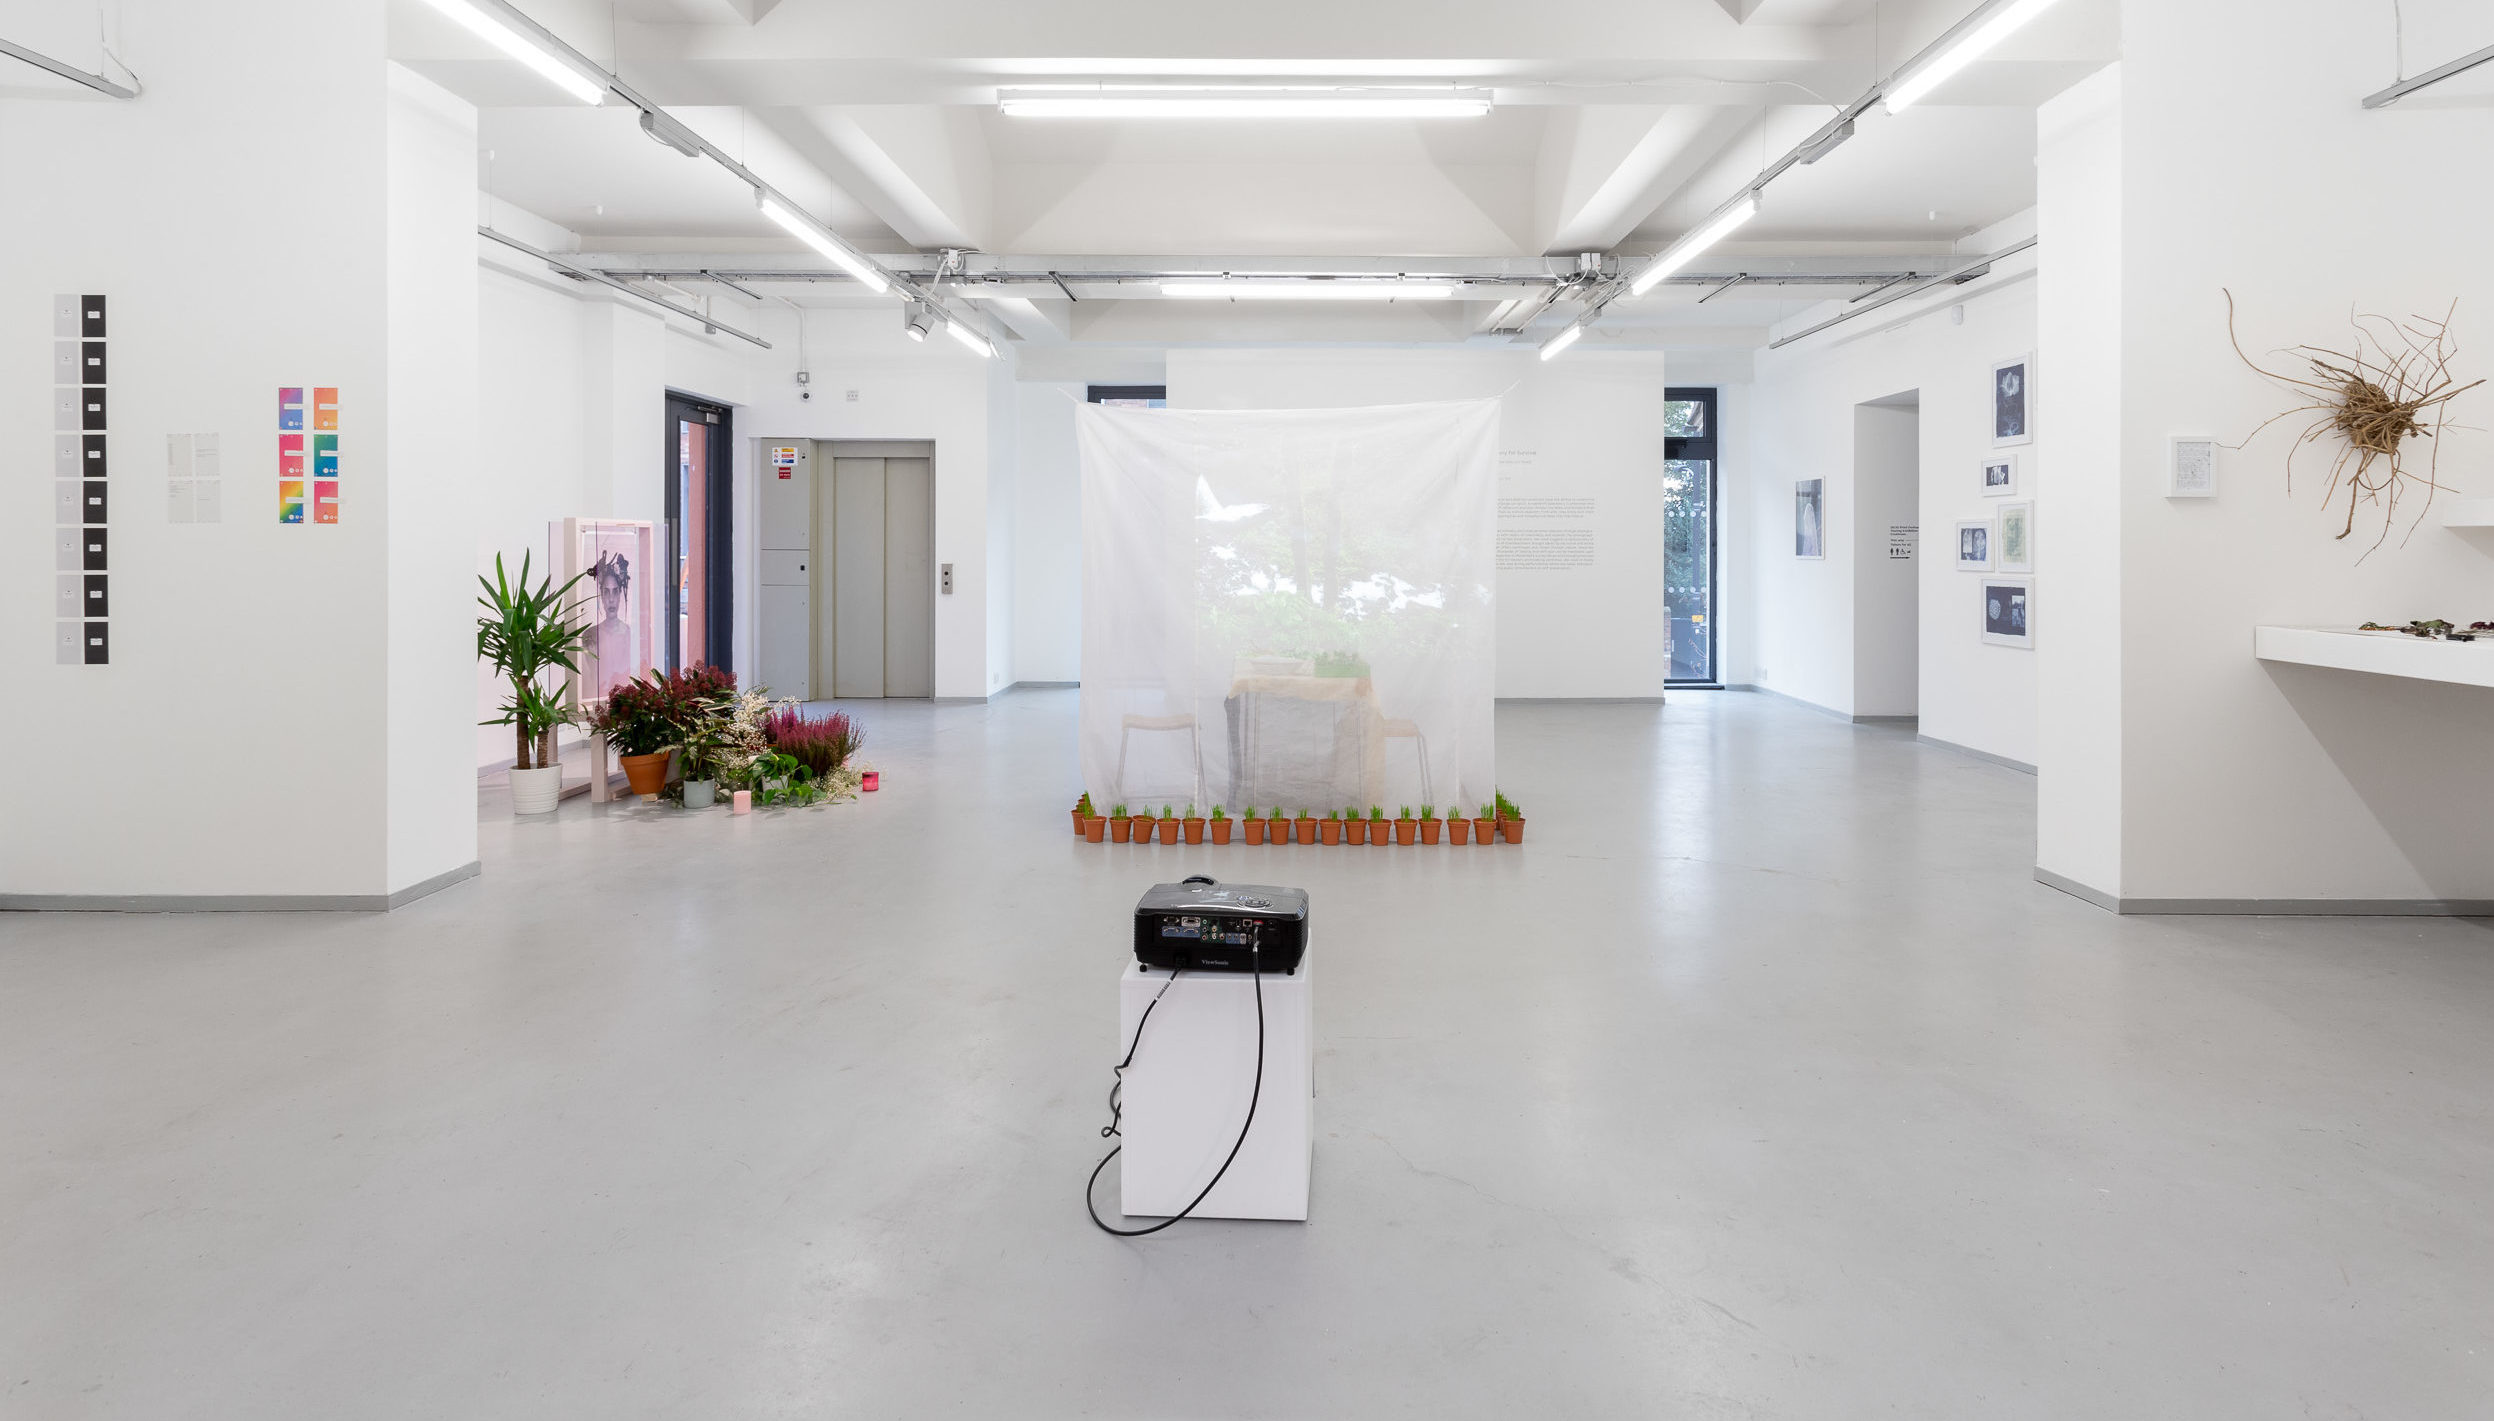 Art House exhibition space displaying A Laboratory for Survival, Cole Ndelu and Dimple B. Shah, ROSL Residency, November 2019, Credit Jules Lister